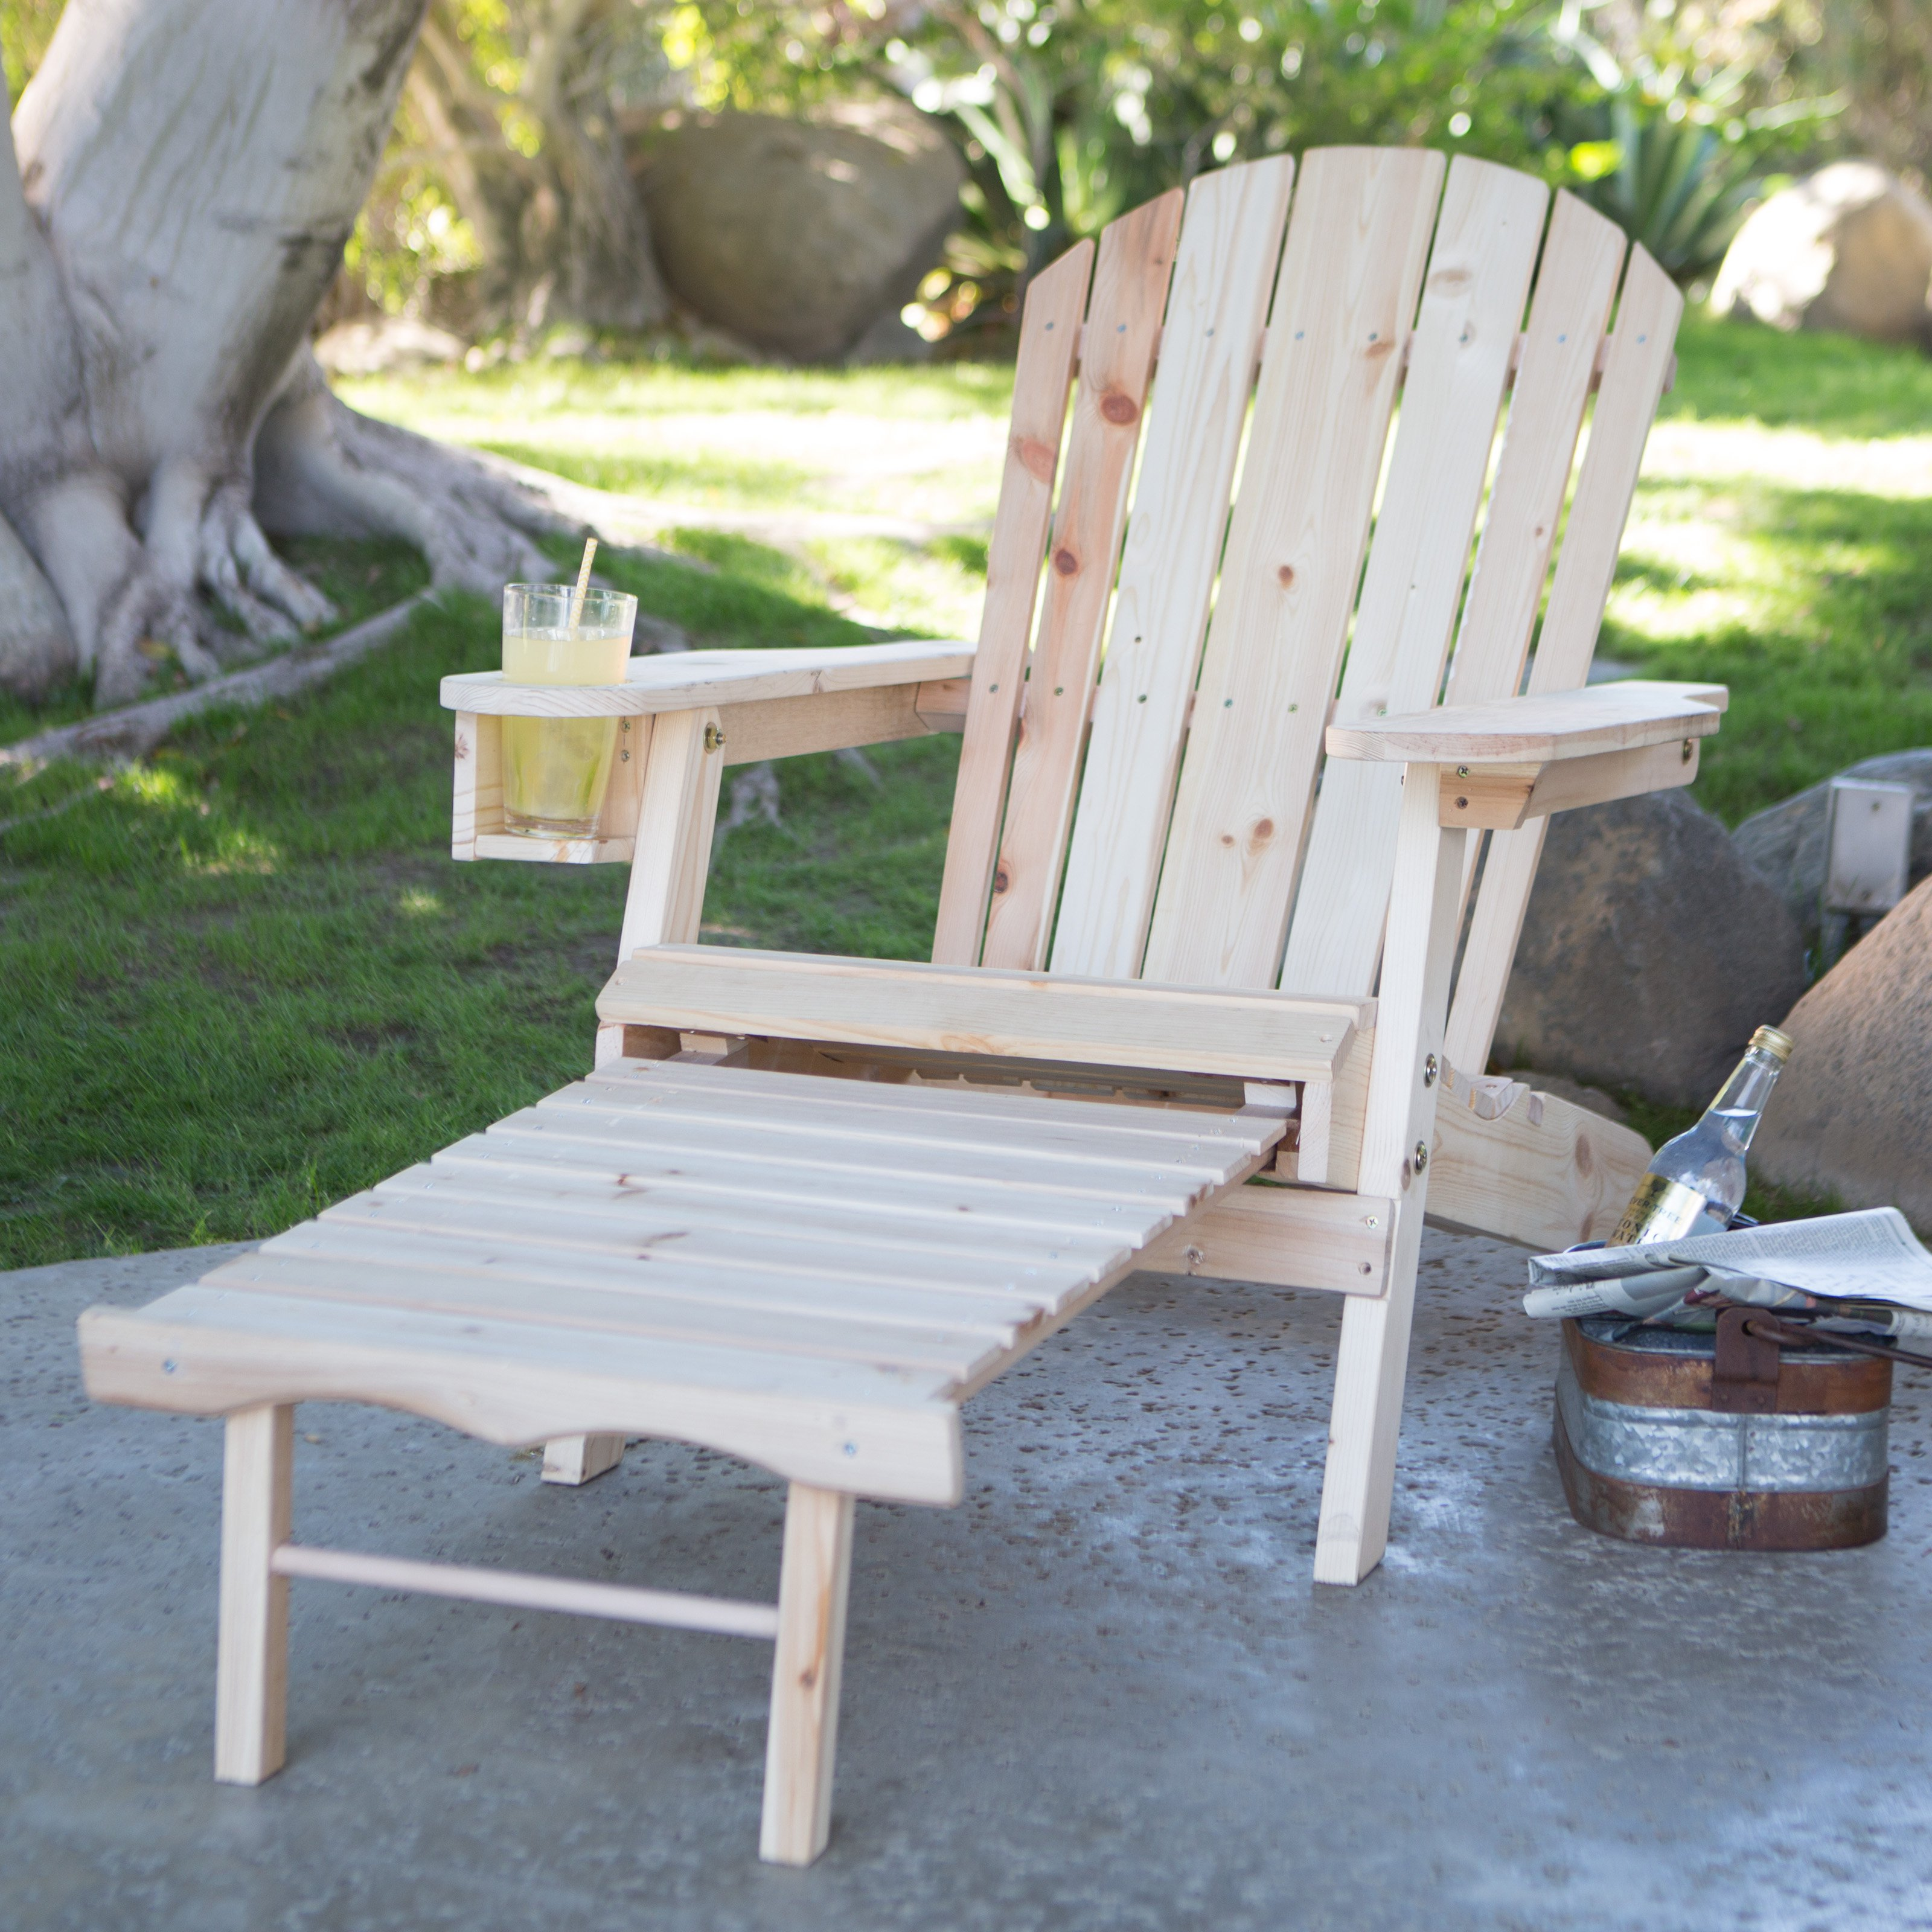 Excellent Coral Coast Big Daddy Adirondack Chair With Pull Out Ottoman And Cup Holder Unfinished Cjindustries Chair Design For Home Cjindustriesco